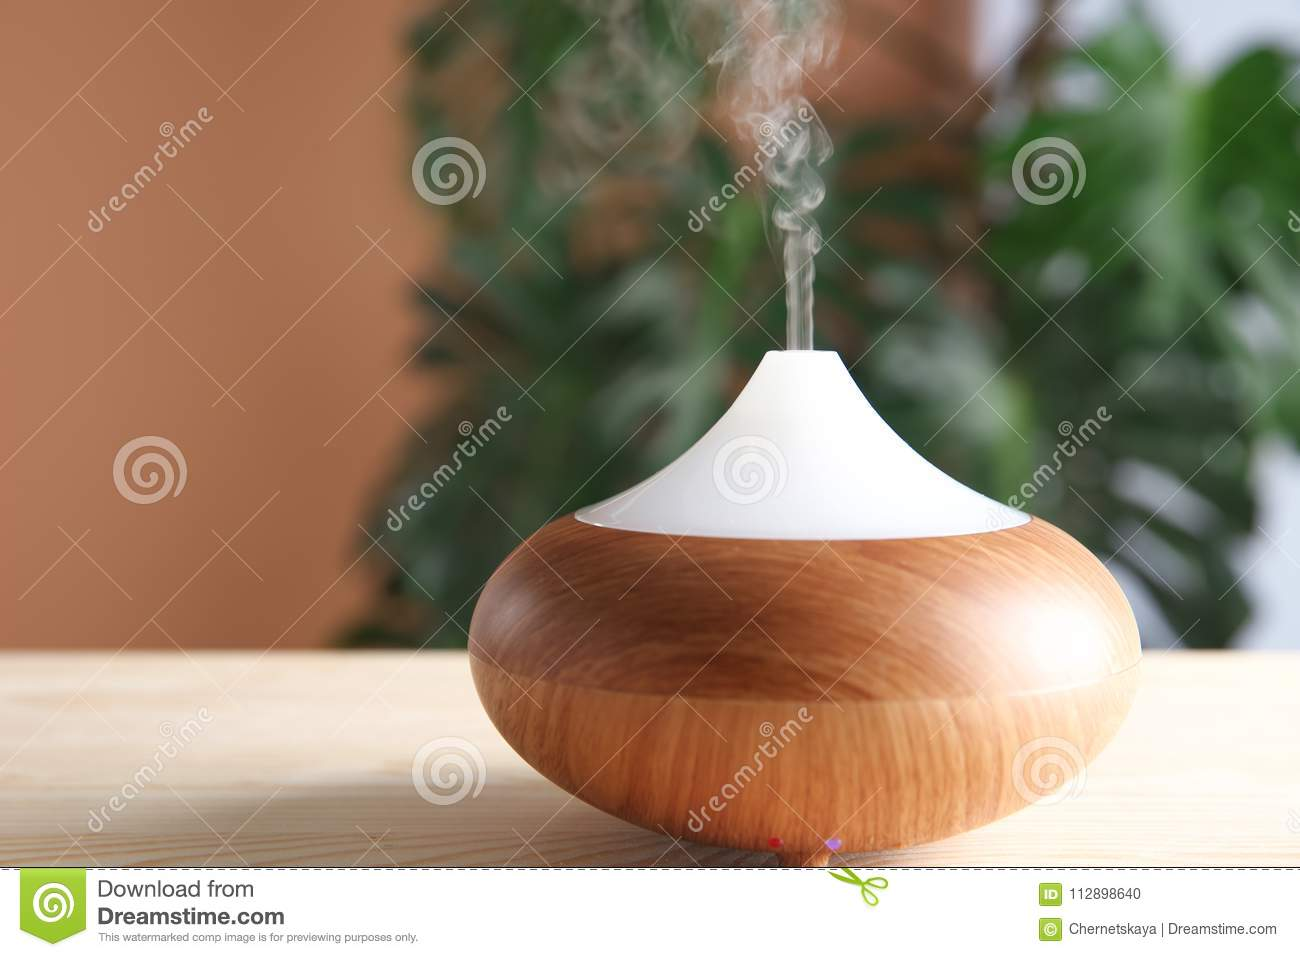 Aroma oil diffuser on table